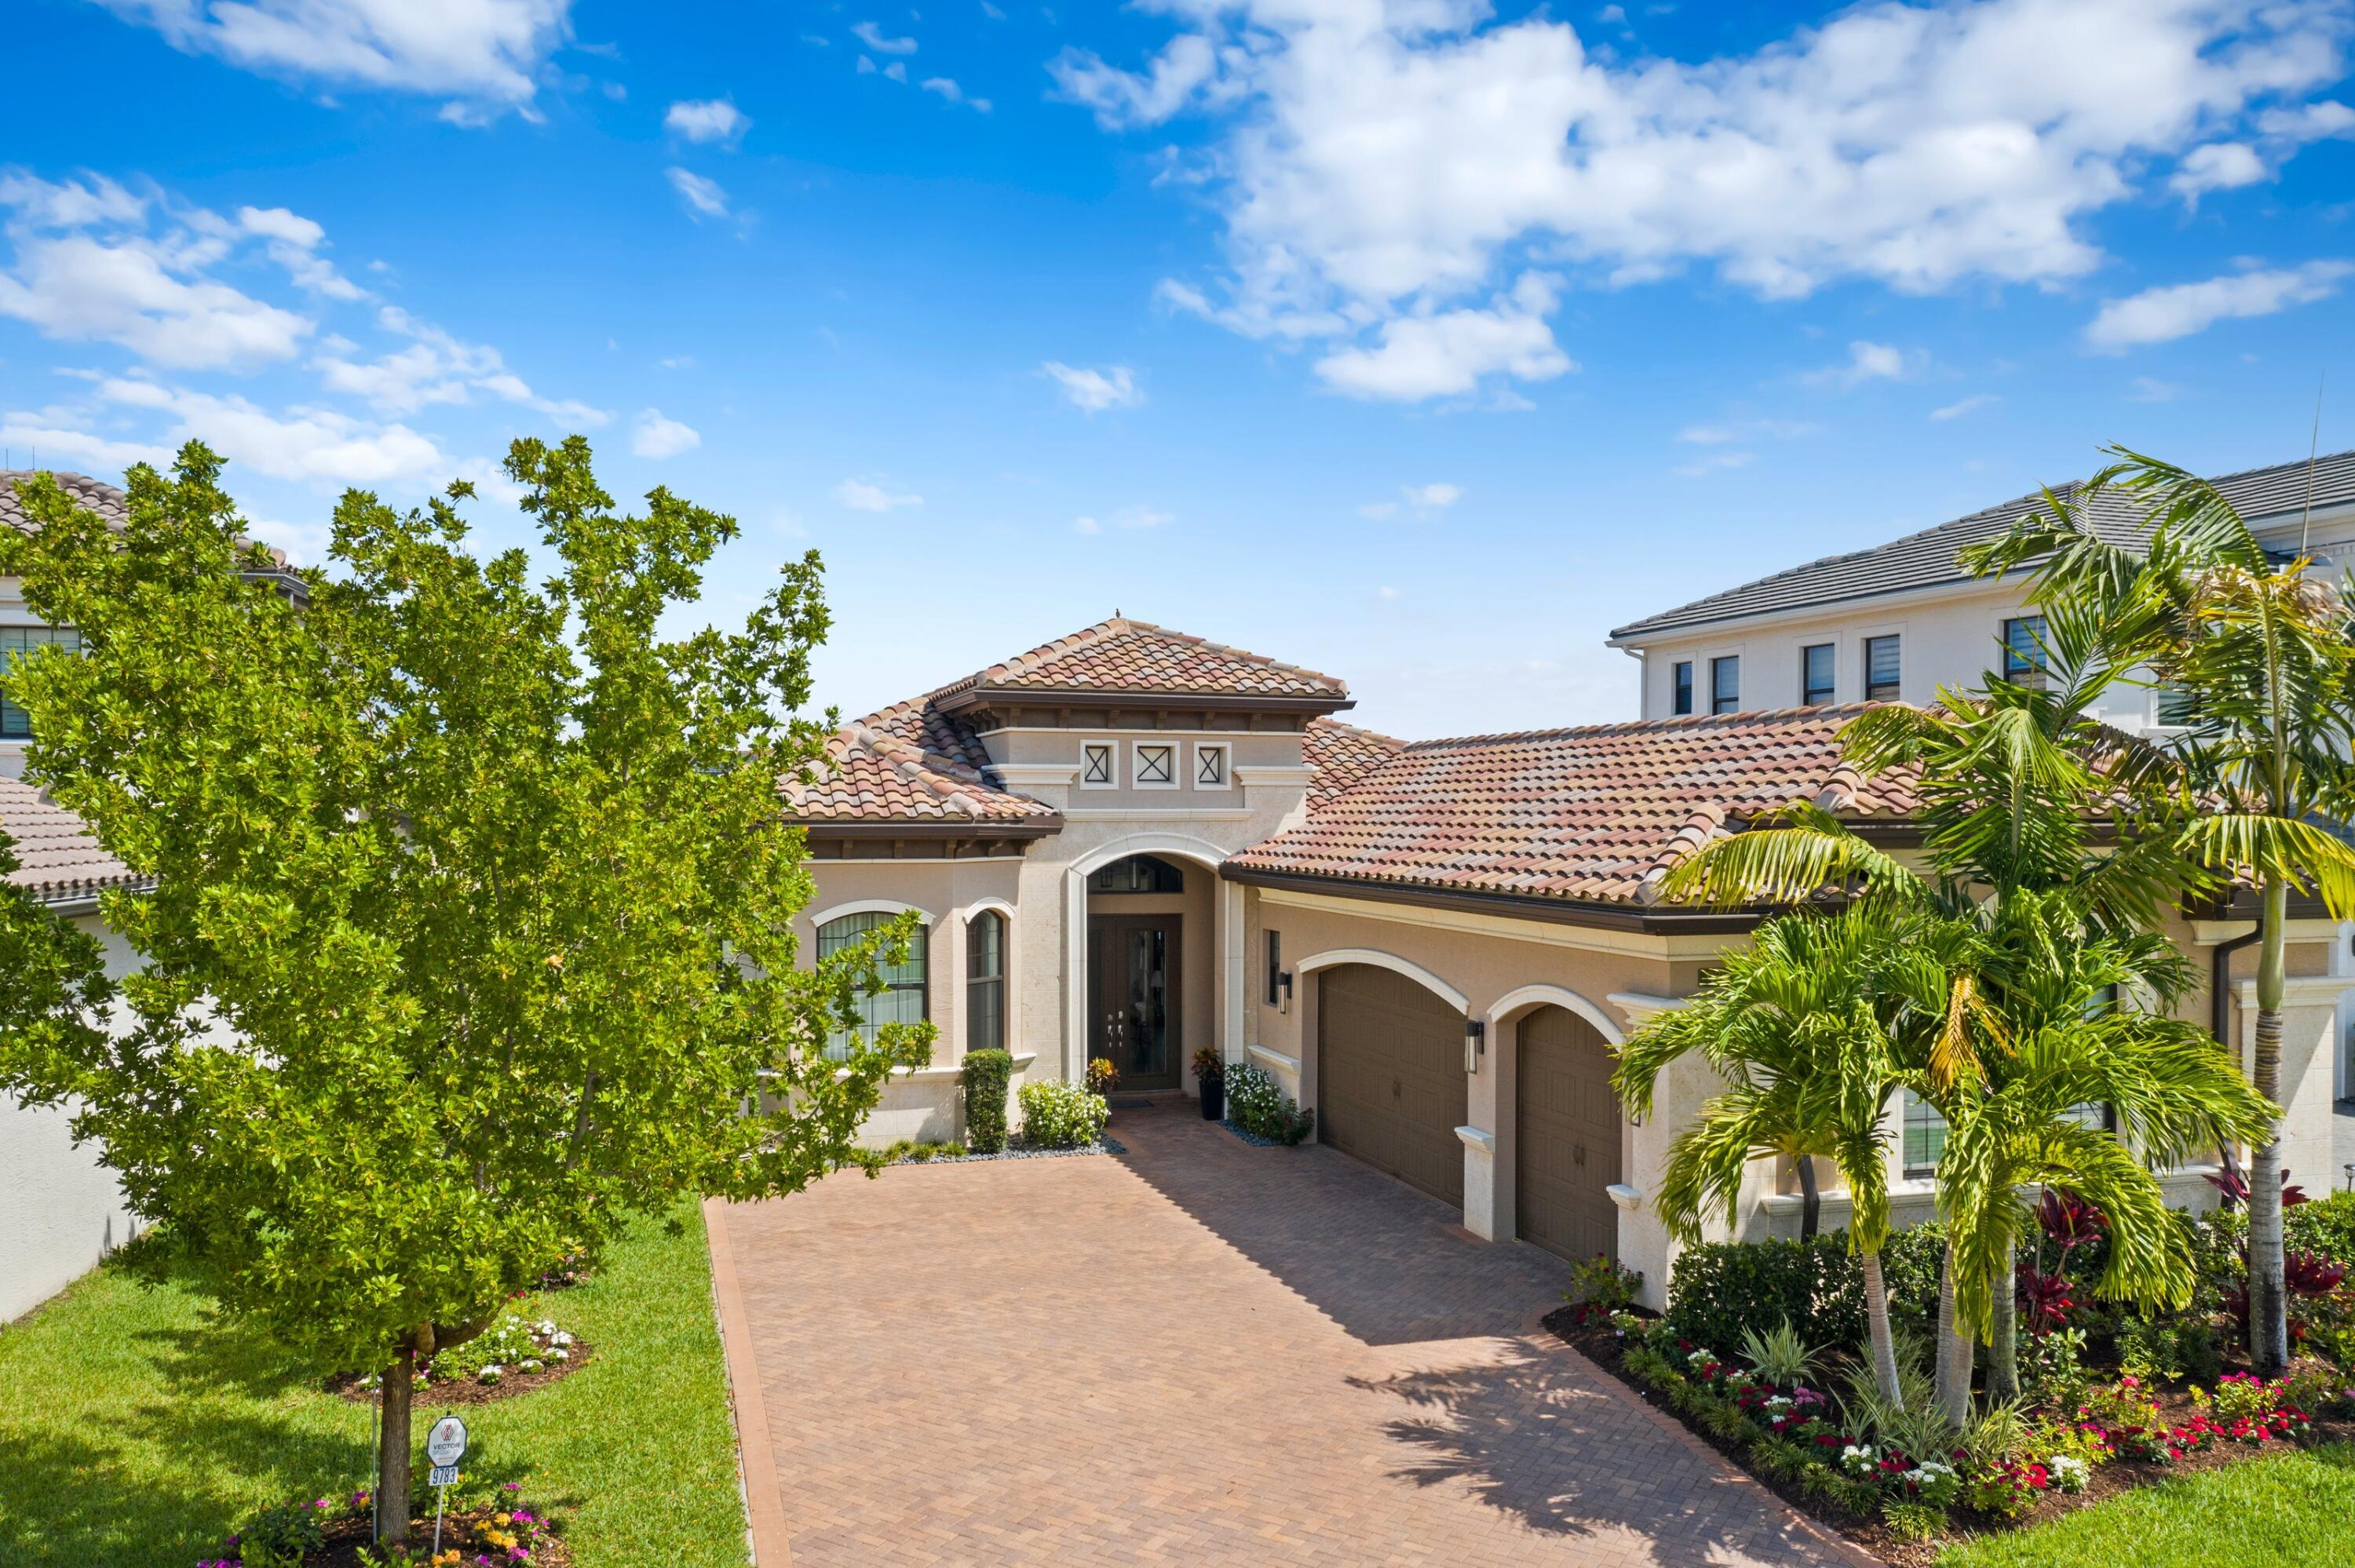 9783 Vitrail Lane, Delray Beach, Florida 33446, 3 Bedrooms Bedrooms, ,3.1 BathroomsBathrooms,Single Family Detached,For Sale,Vitrail,RX-10709987